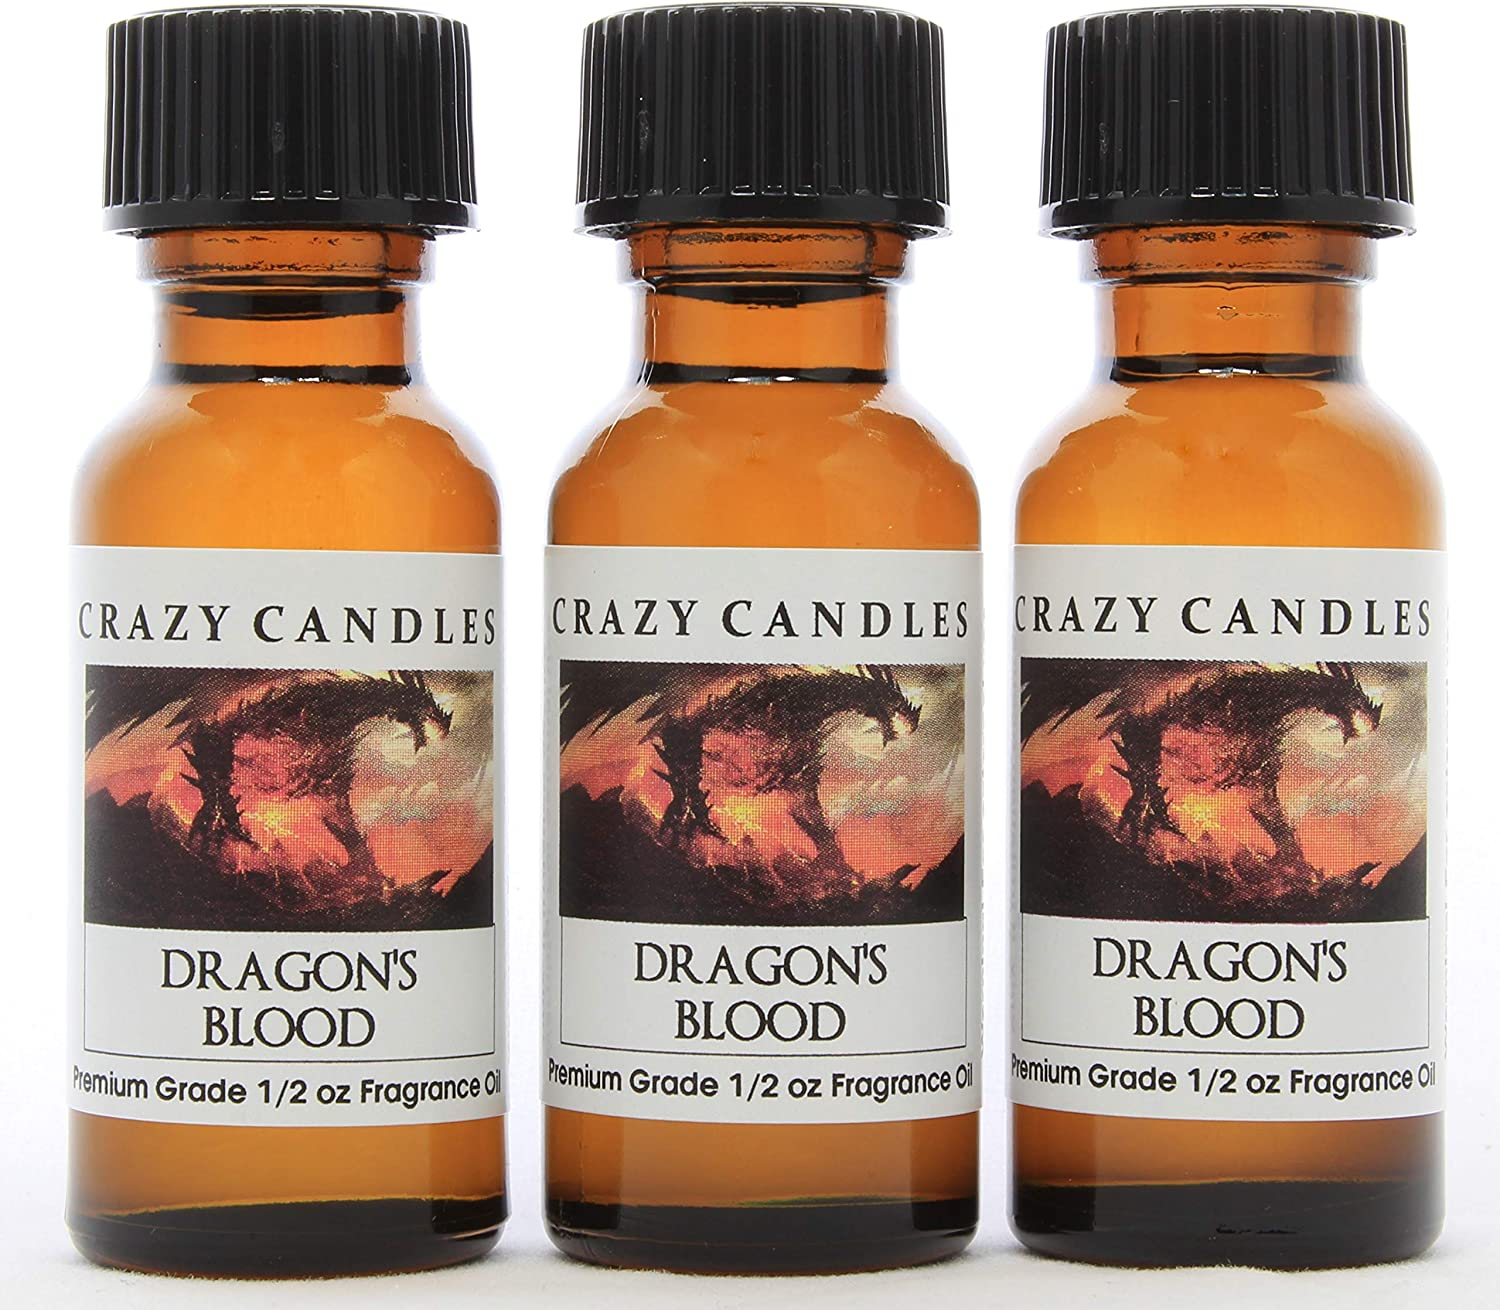 Dragon's Blood (natural herb, earthy, masculine aroma spice, dark woods and mystery) 3 Bottles 1/2 FL Oz Each (15ml) Premium Grade Scented Fragrance Oil by Crazy Candles